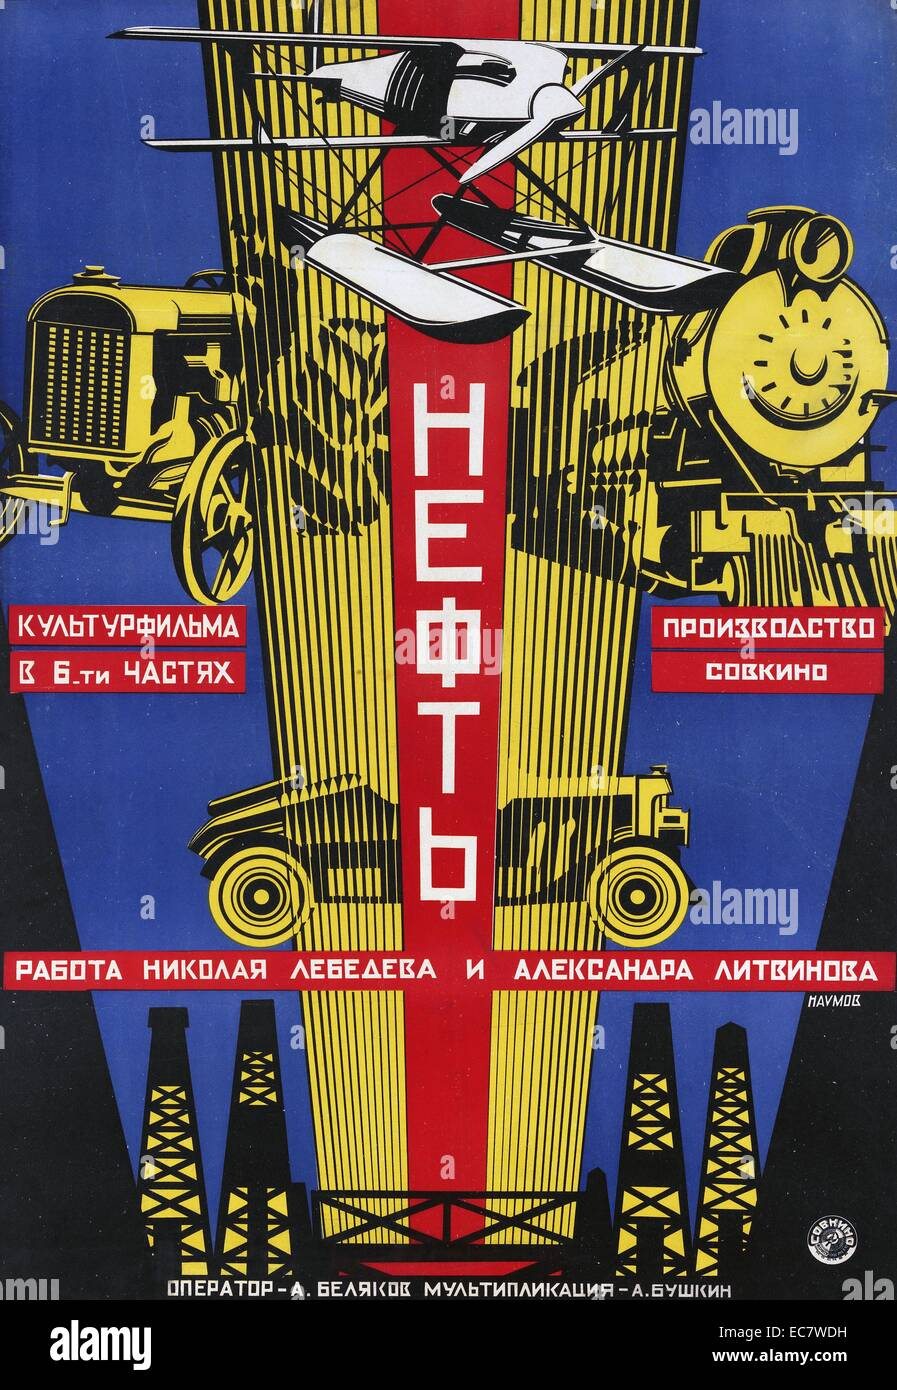 Poster from the Soviet silent movie era. The 1920s marked a decade of upheavel and revolution in the USSR. In the Stock Photo